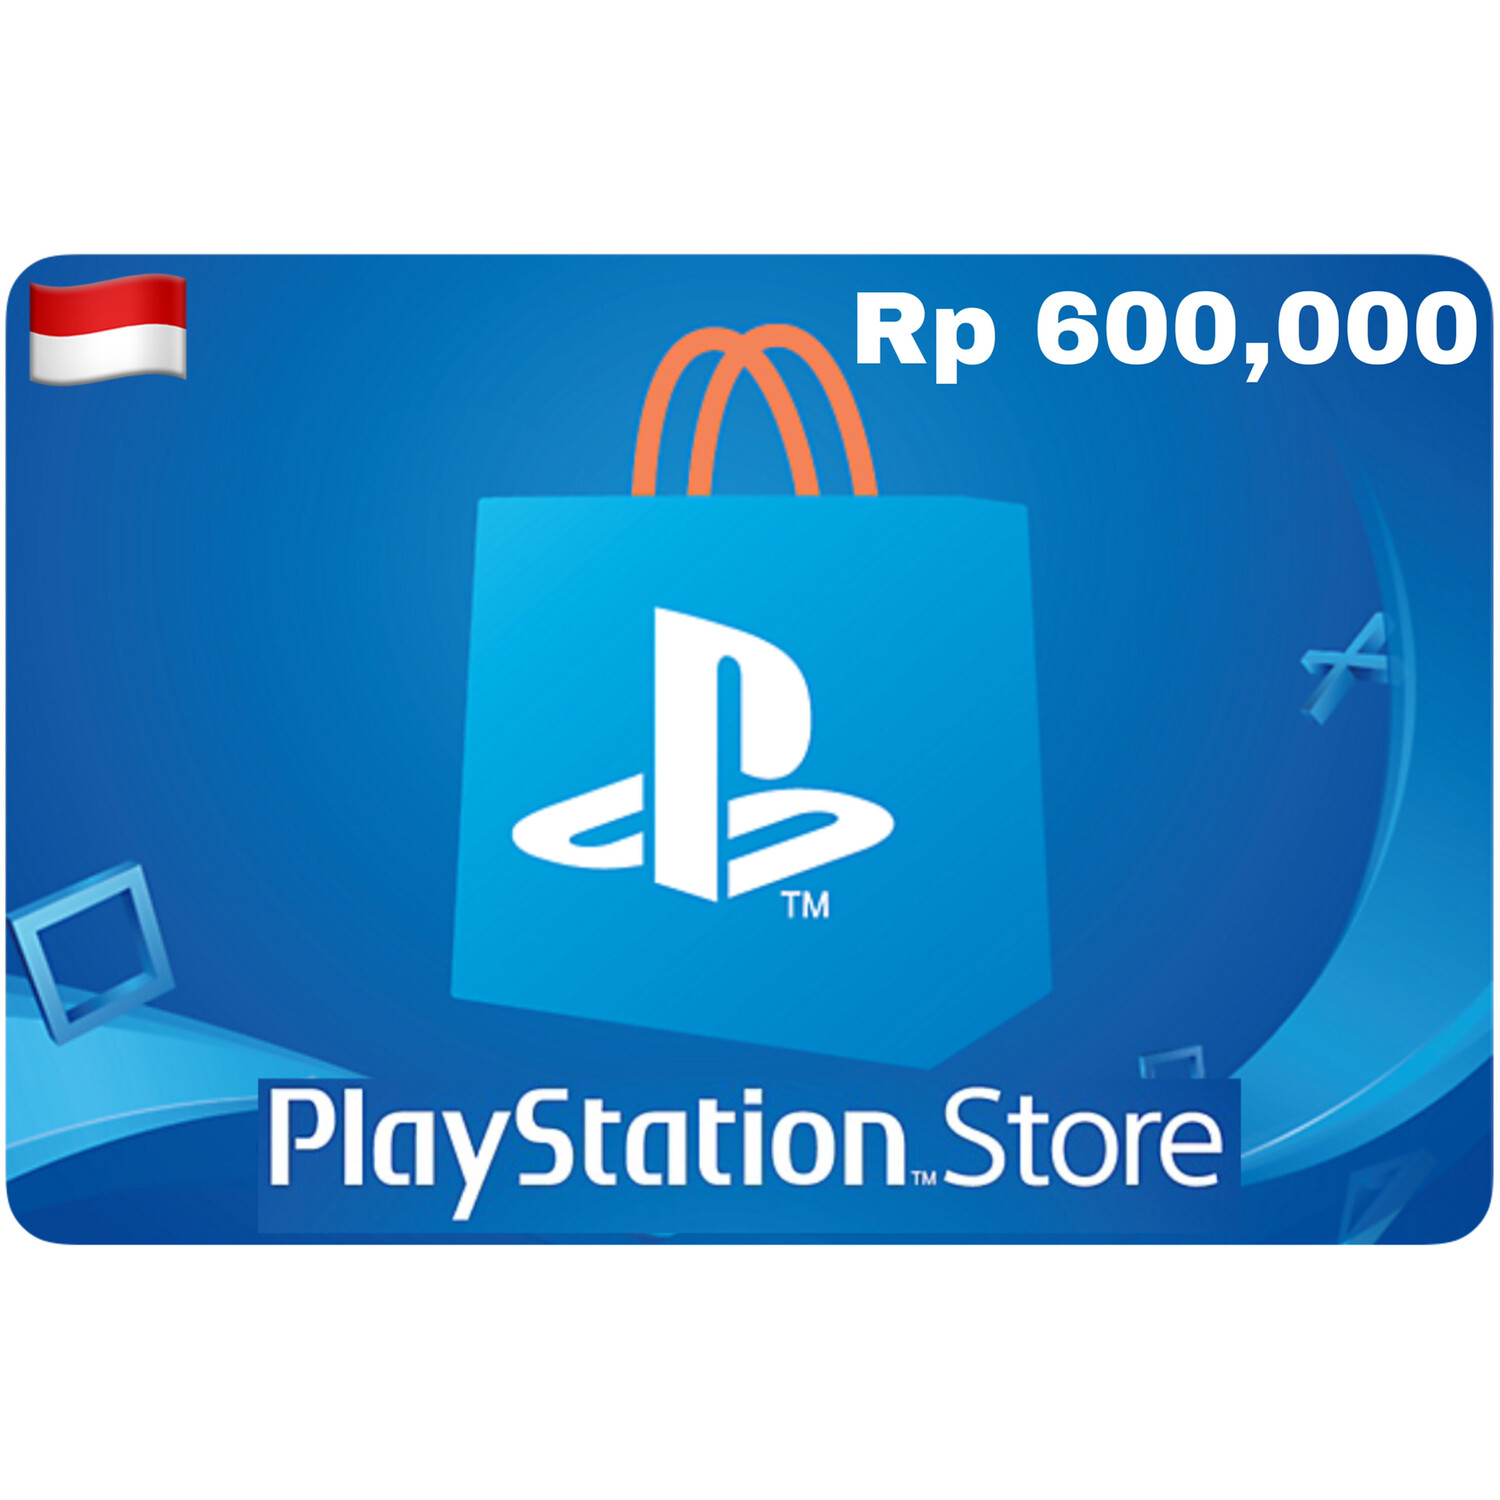 Playstation Store Gift Card Indonesia IDR 600,000